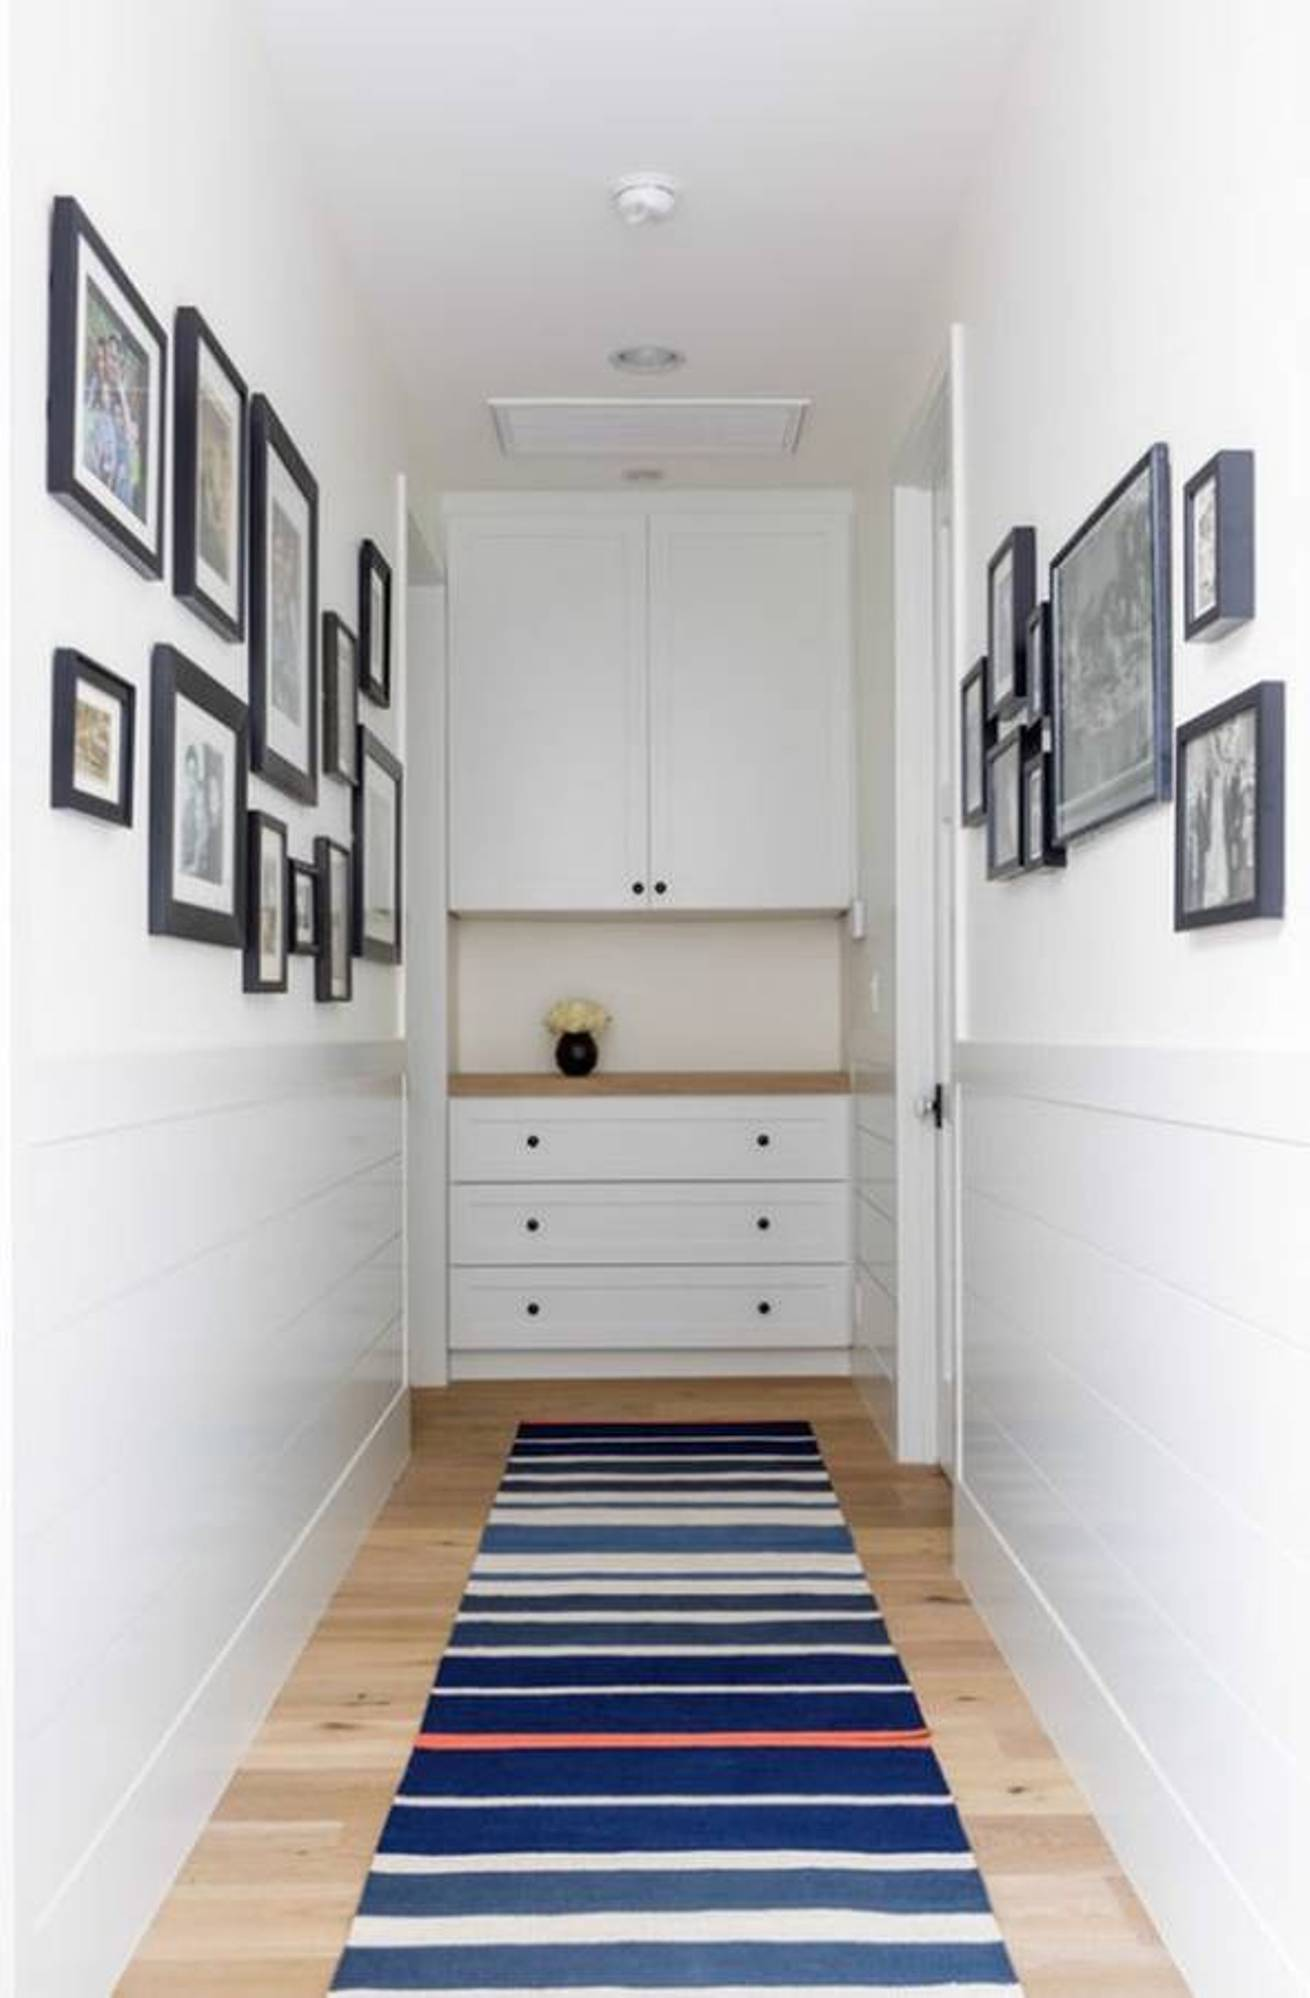 inspirational-end-of-hallway-decorating-ideas-simple-narrow-download-decoration-small-cabinetry-i_hallway-picture-ideas_ideas_small-bathroom-design-ideas-studio-backyard-landscape-bedroom-toe-nail-hom